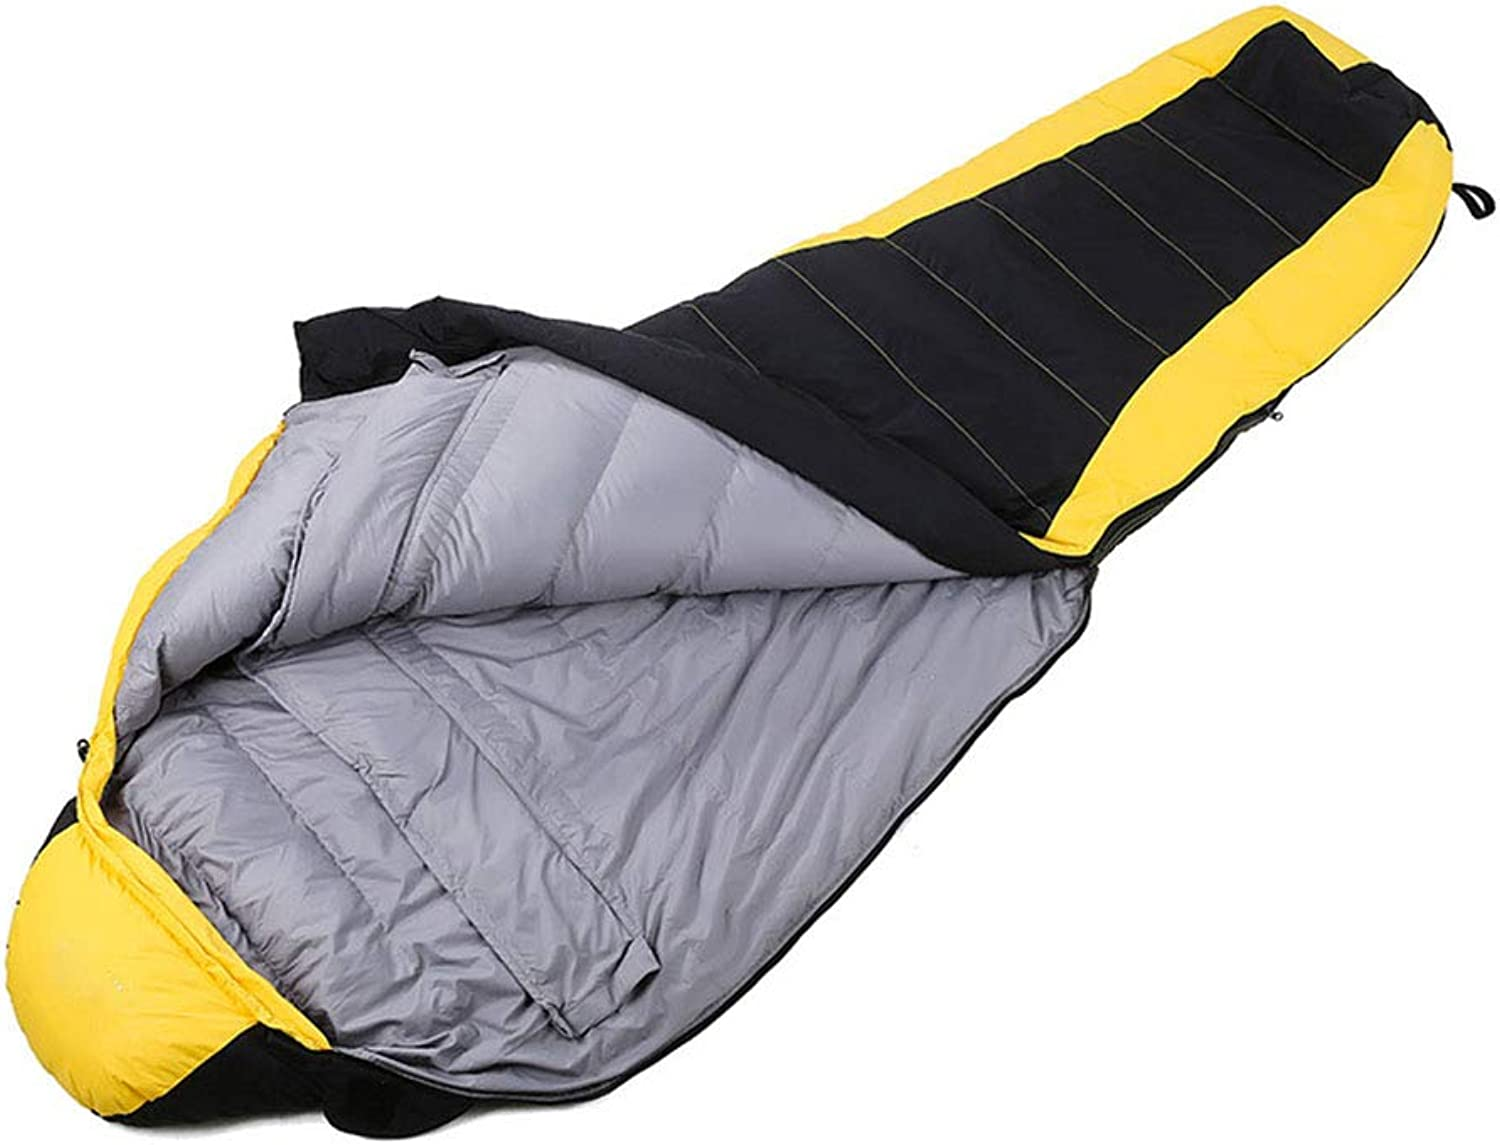 Mummy Sleeping Bag, 4 Seasons,Filling White Duck Down, Keep Warm, Soft and Comfortable,Suitable for Hiking, Camping, Tourism  Yellow